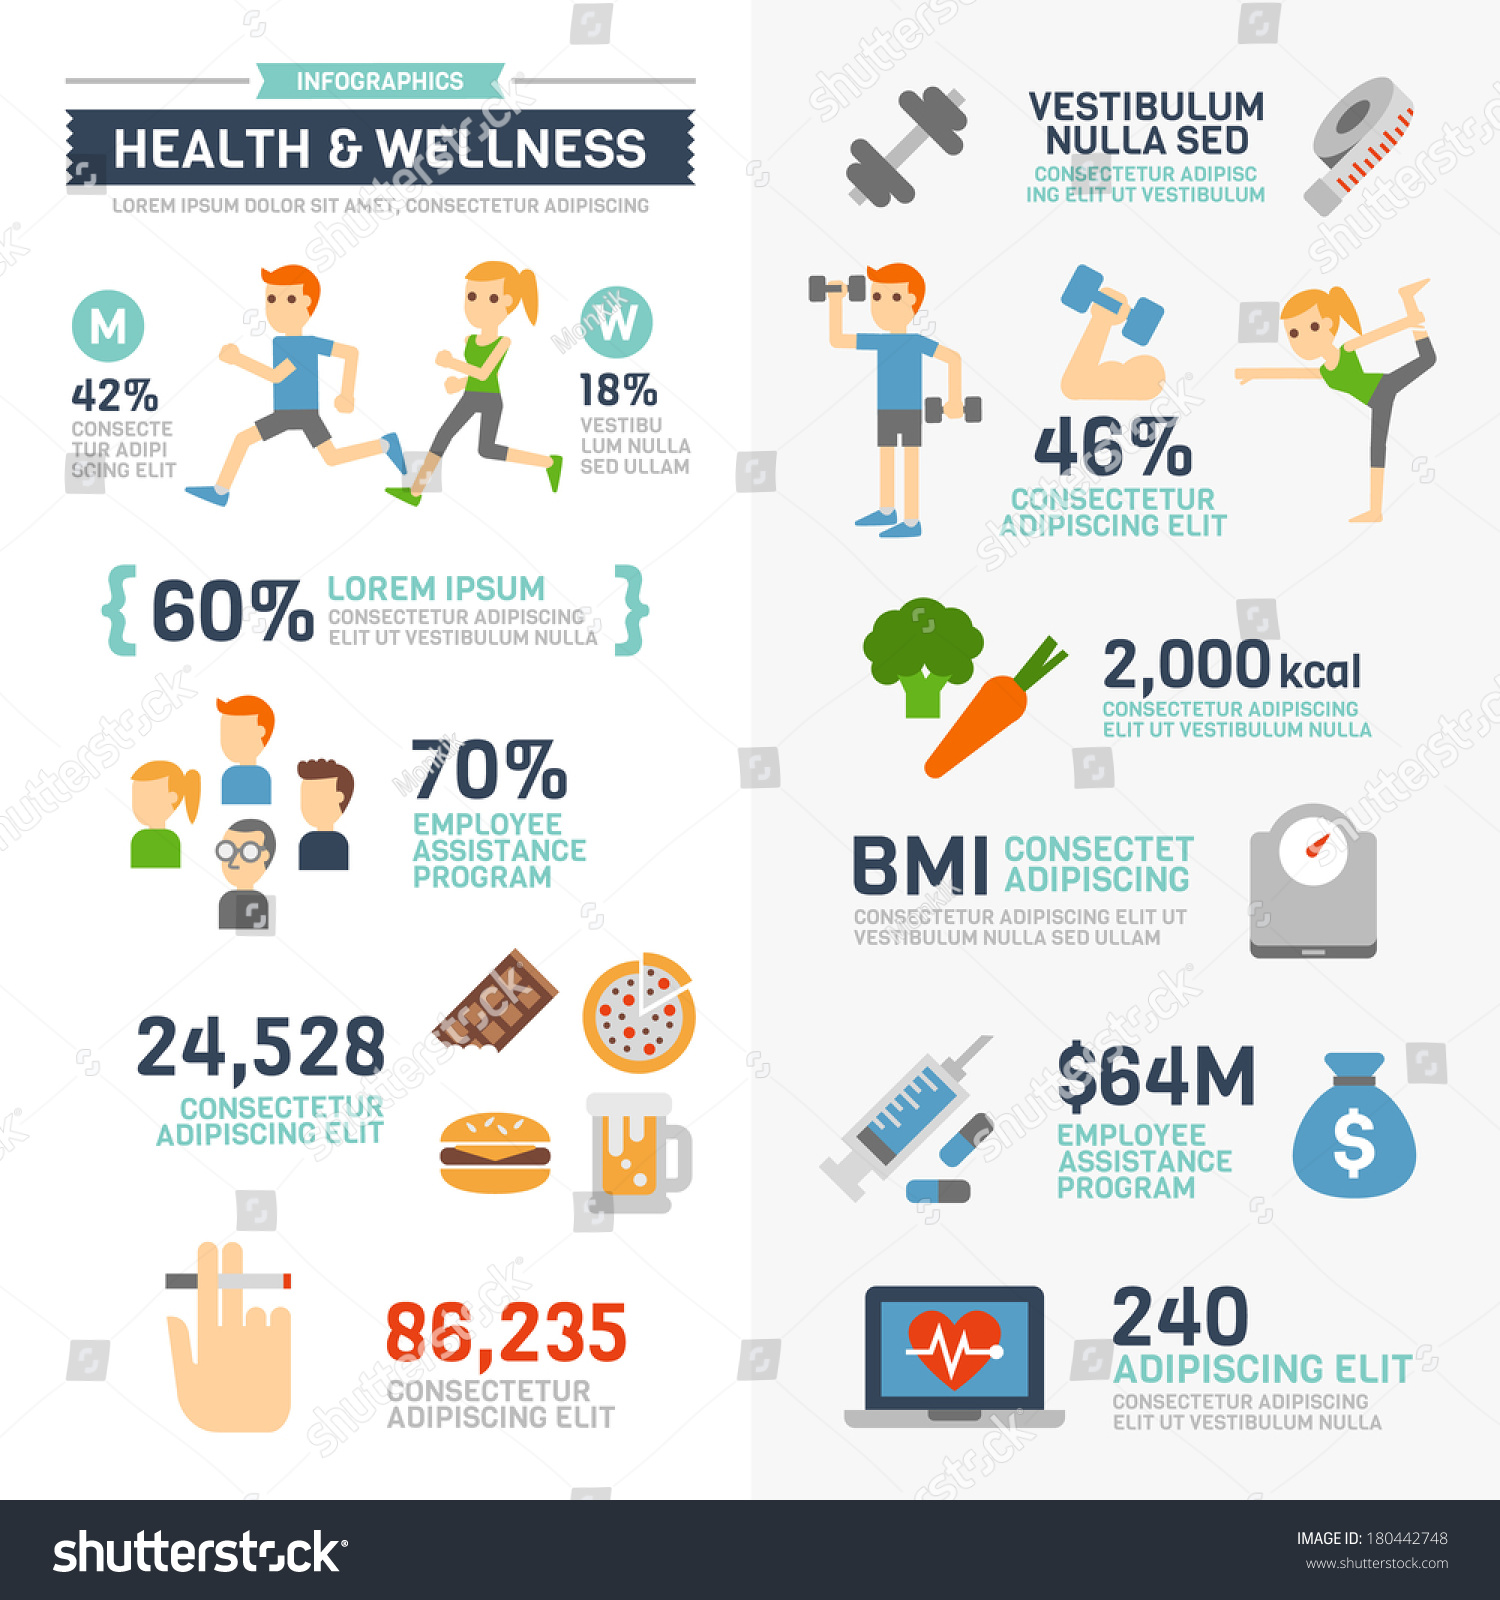 4 H On Twitter Check Out This Infographic On How To: Health And Wellness Infographics Stock Vector Illustration